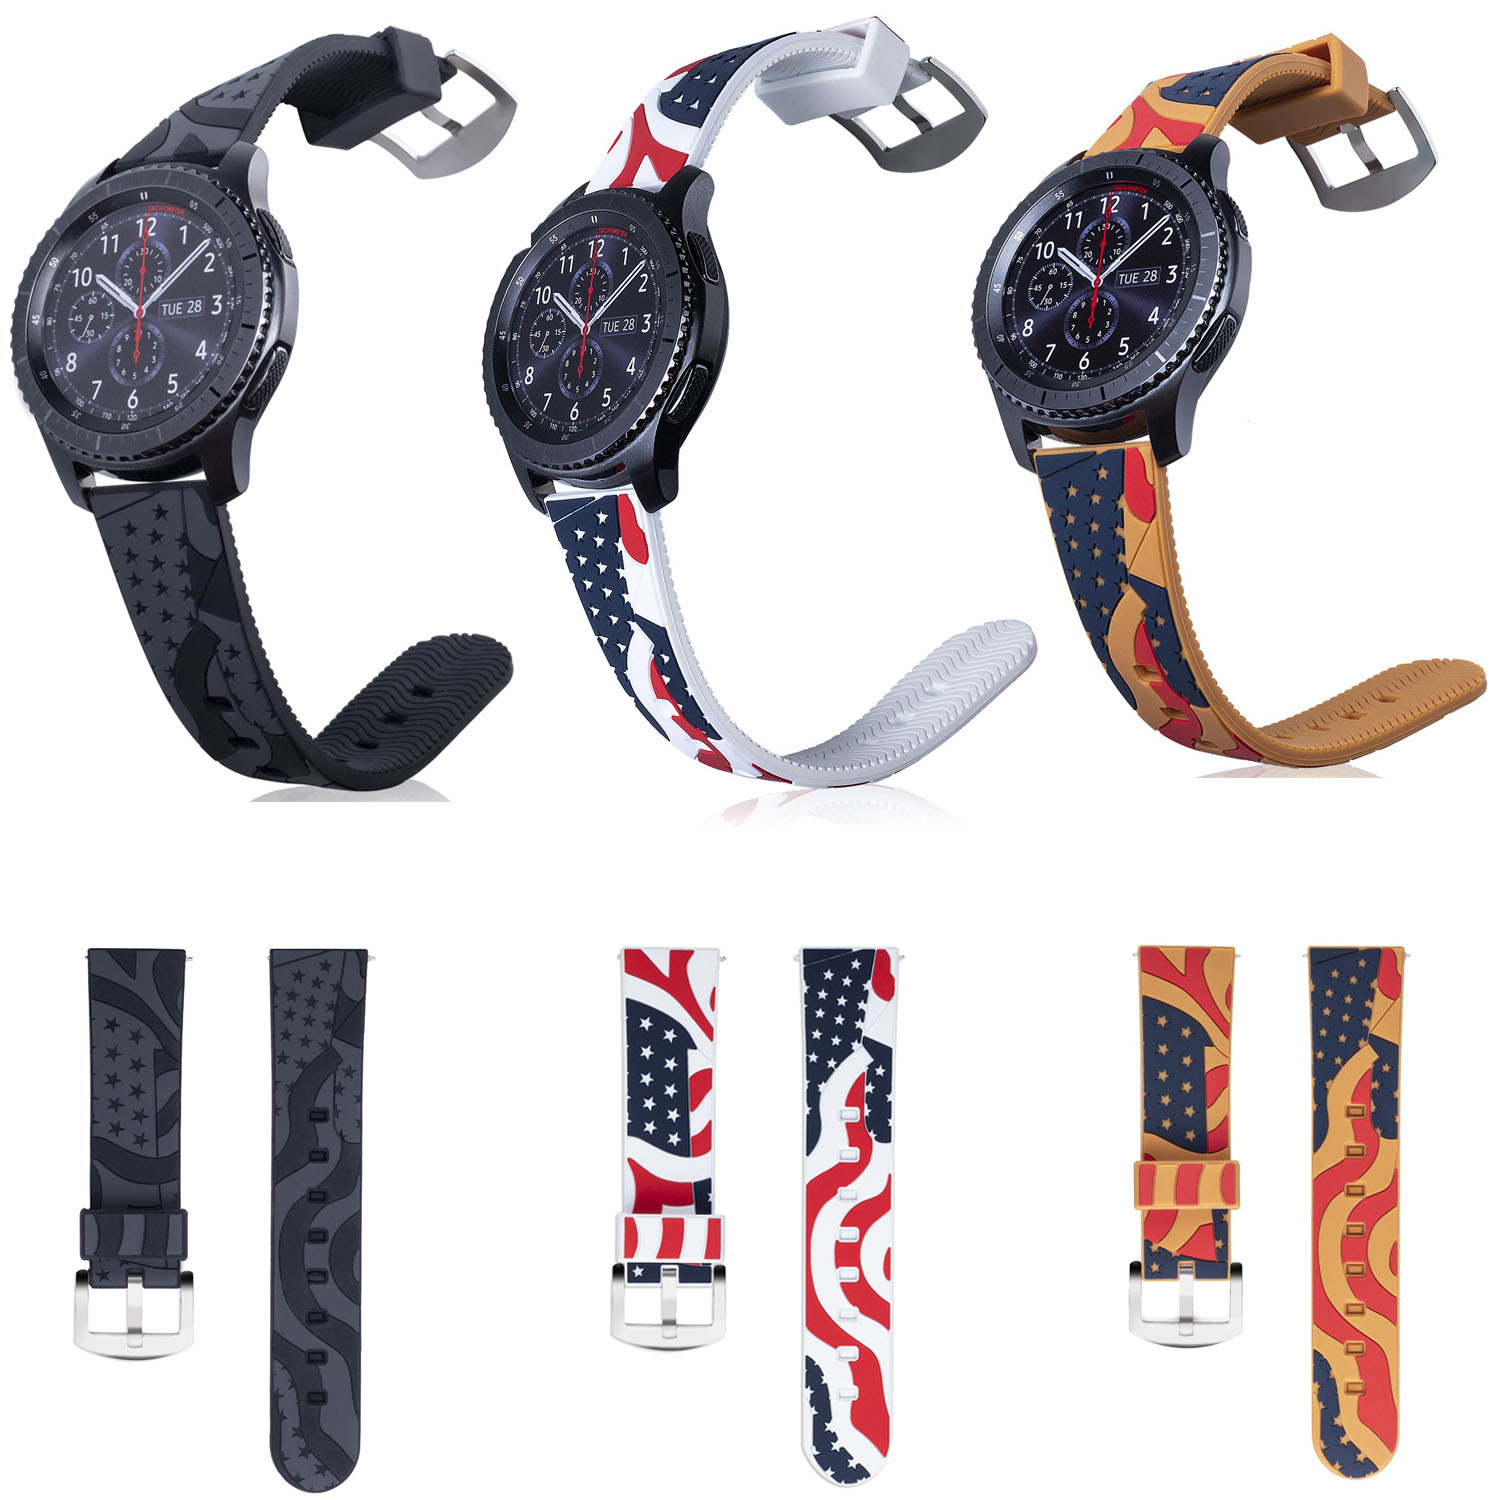 The American Flag Stars and Stripes Silicone Band for Samsung Gear S3 Frontier Strap for Gear S3 Classic Smart Watch Bracelet dt 1130 emf meter for electromagnetic radiation detector 50hz 2000mhz